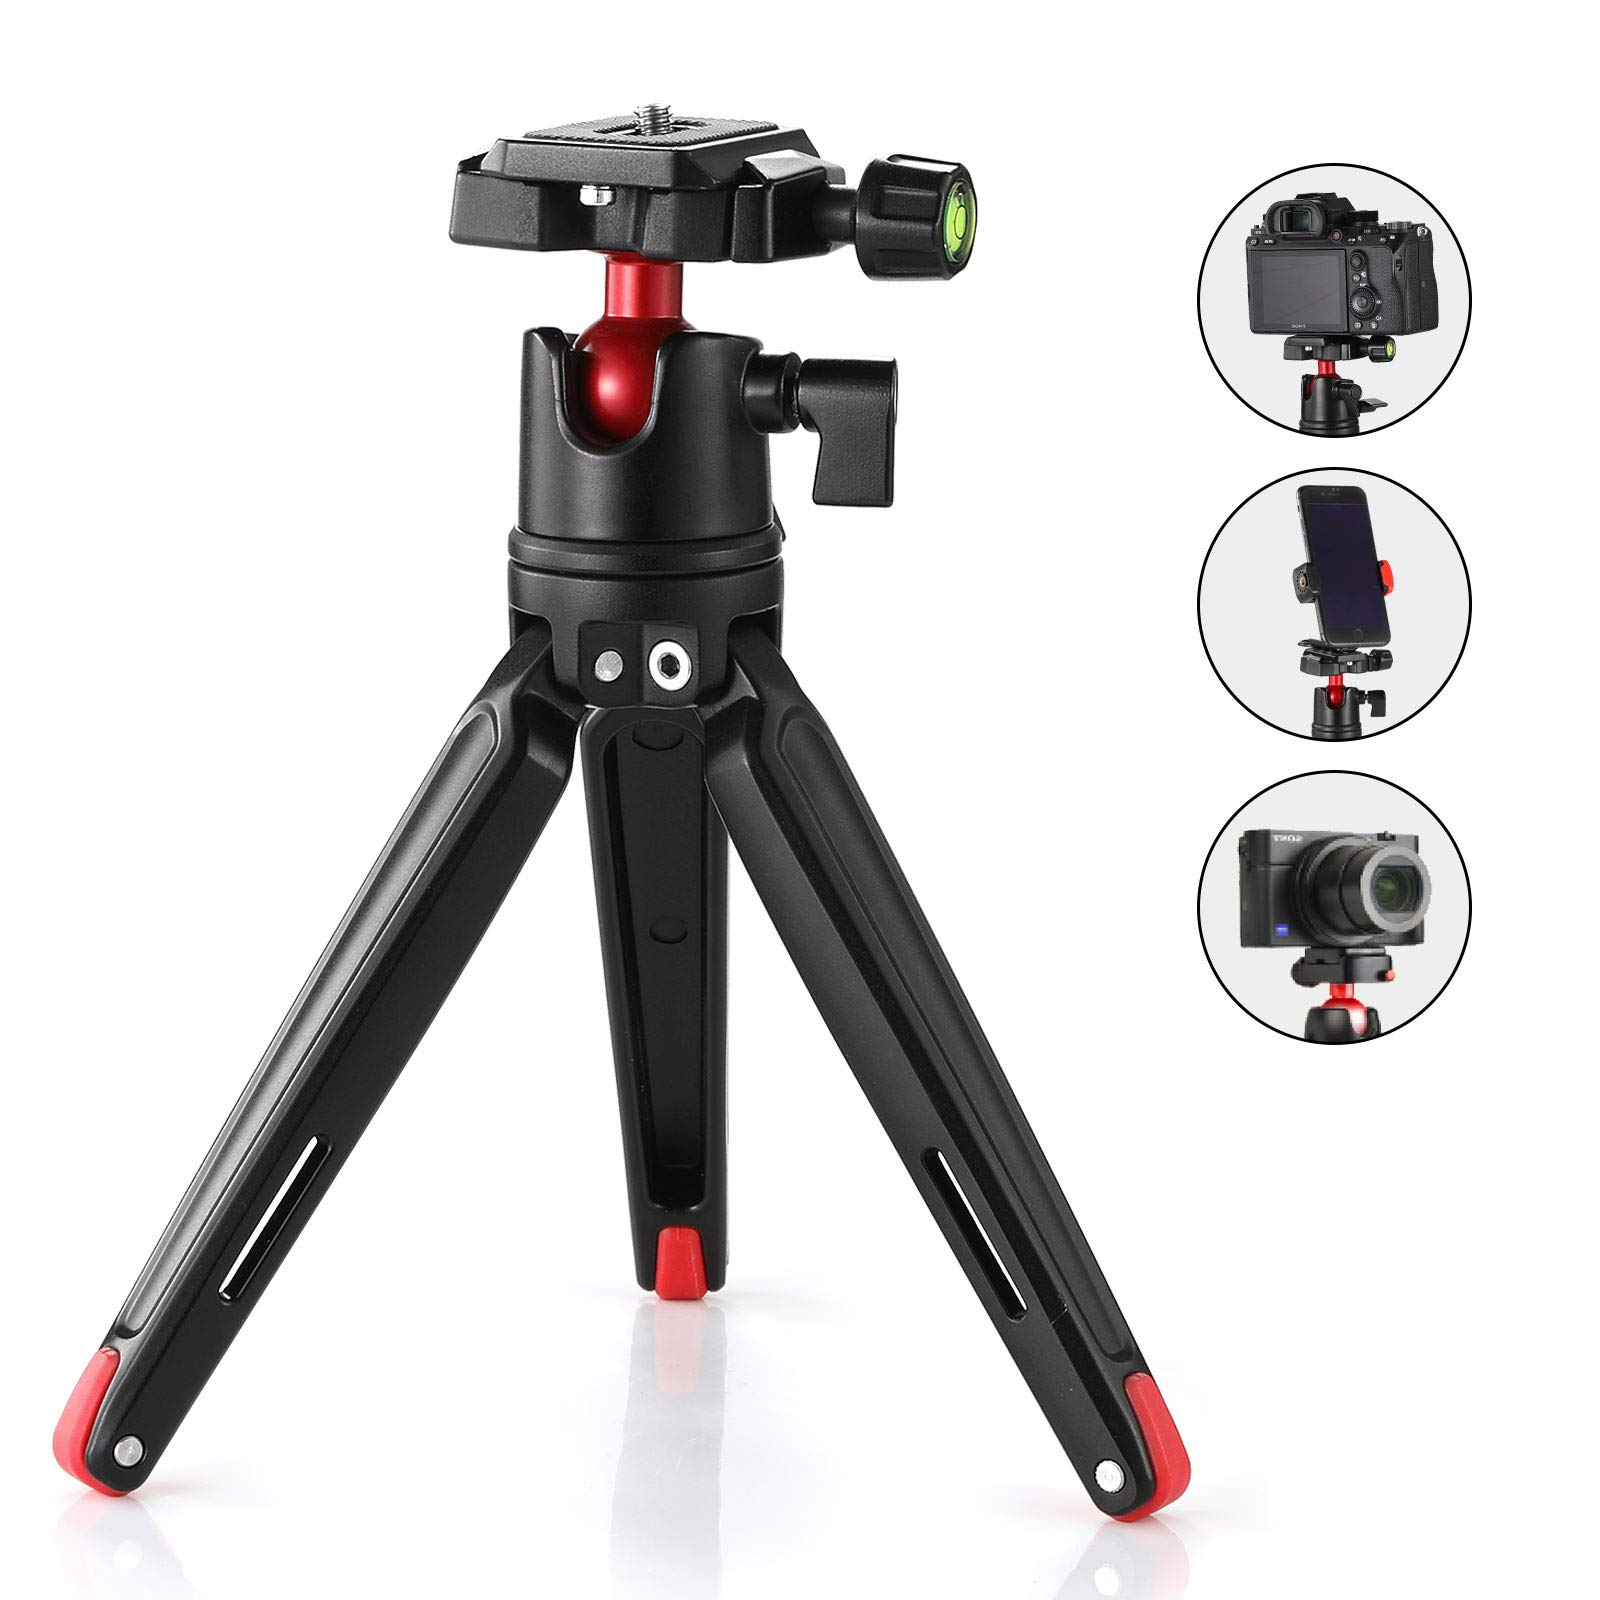 SMALLRIG Tabletop Tripod, Mini Desktop Travel Tripod Aluminum Alloy with 360 Degree Ball Head and Quick Release Plate Lightweight and Portable for Compact Cameras DSLRs, Phone, Gopro(Black)- 2287 by SMALLRIG